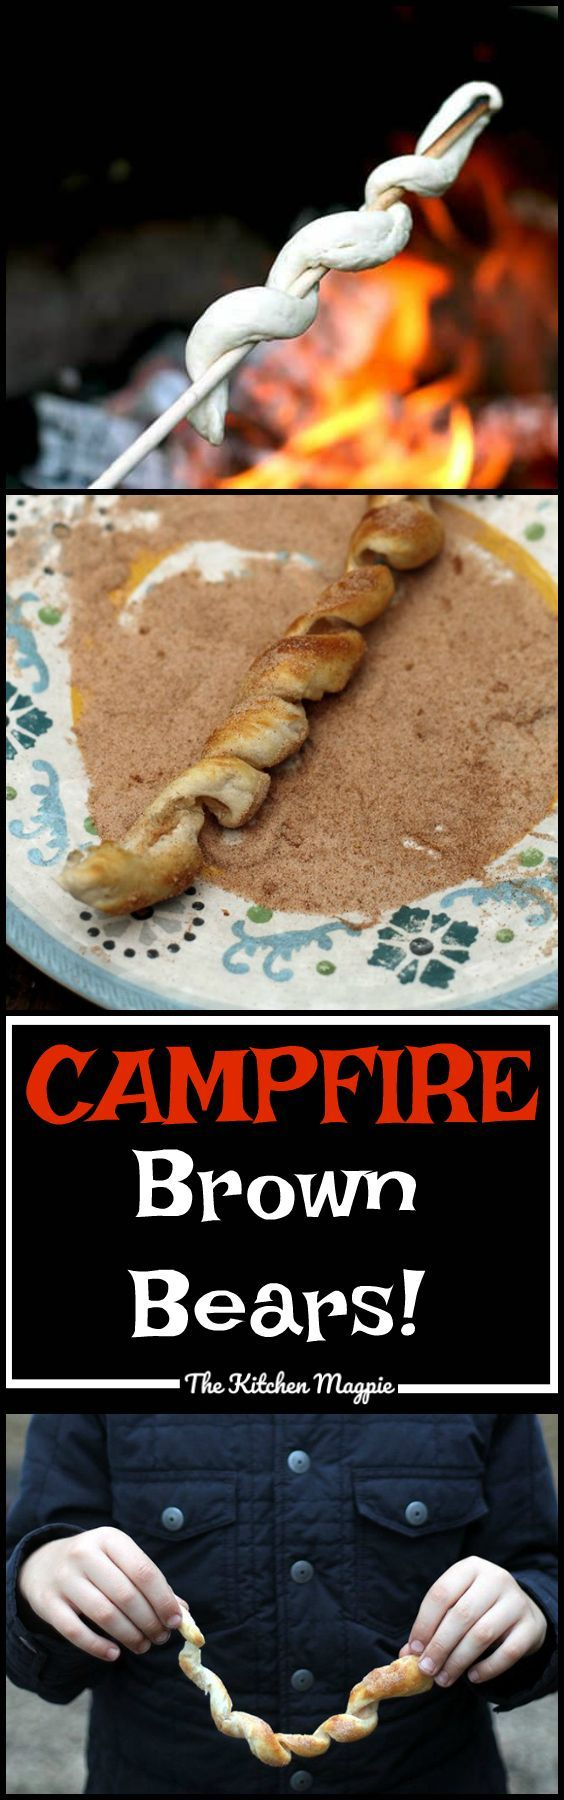 Campfire Brown Bears Recipe The Easiest Camping Food Ever Biscuits And Cinnamon Sugar Make For An Easy Delicious Fireside Treat